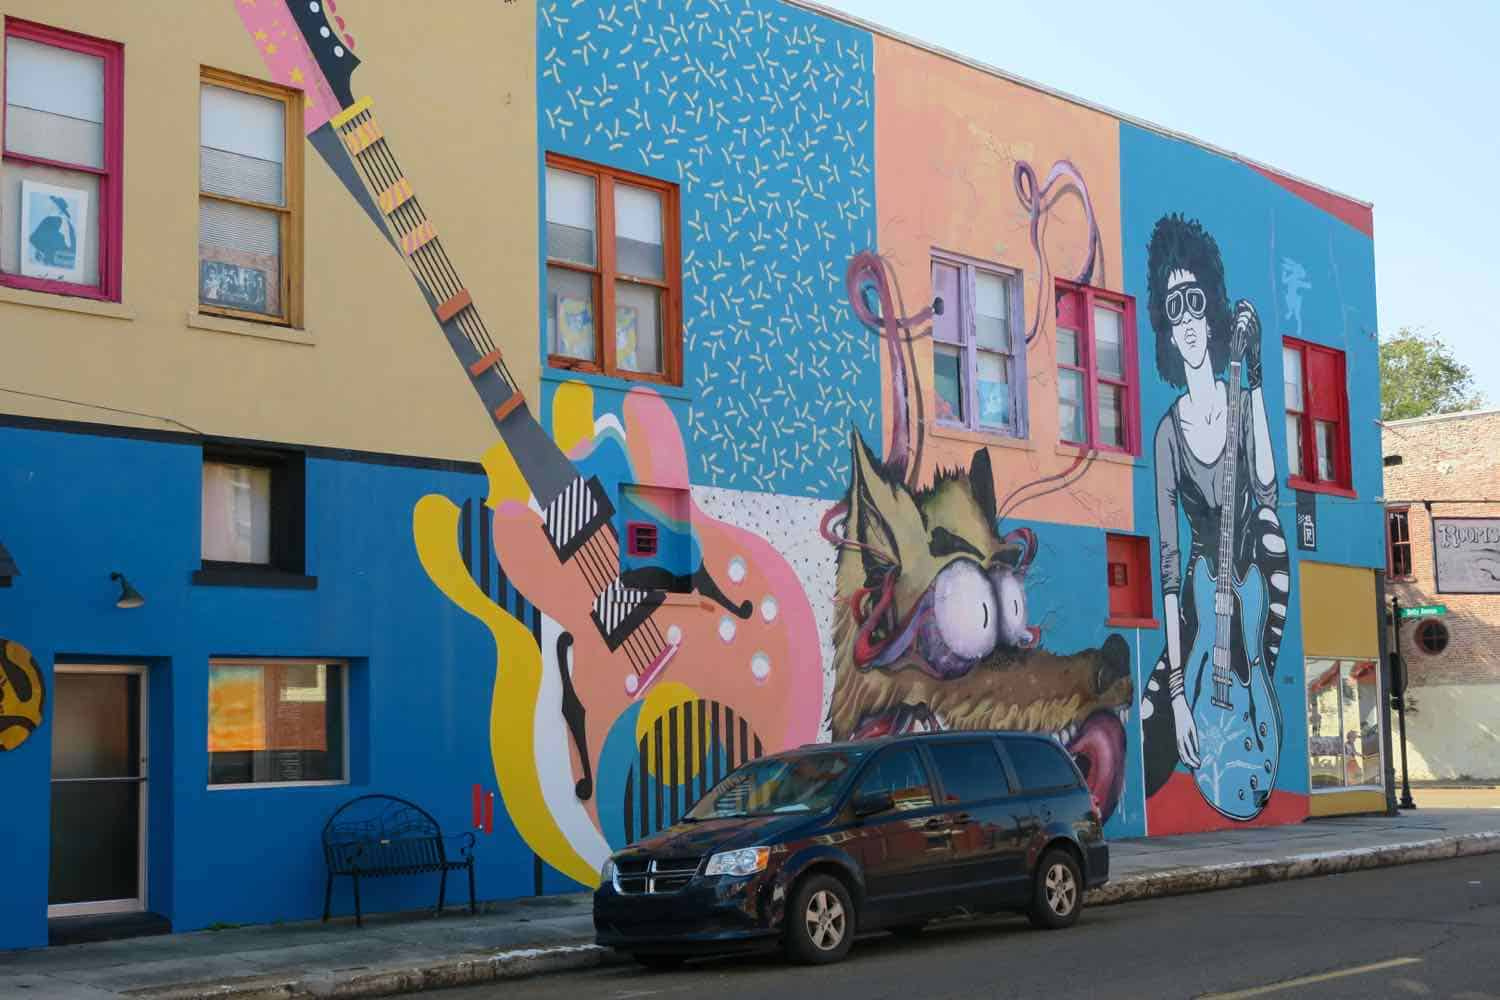 Colorful mural in a city depicting musicians.